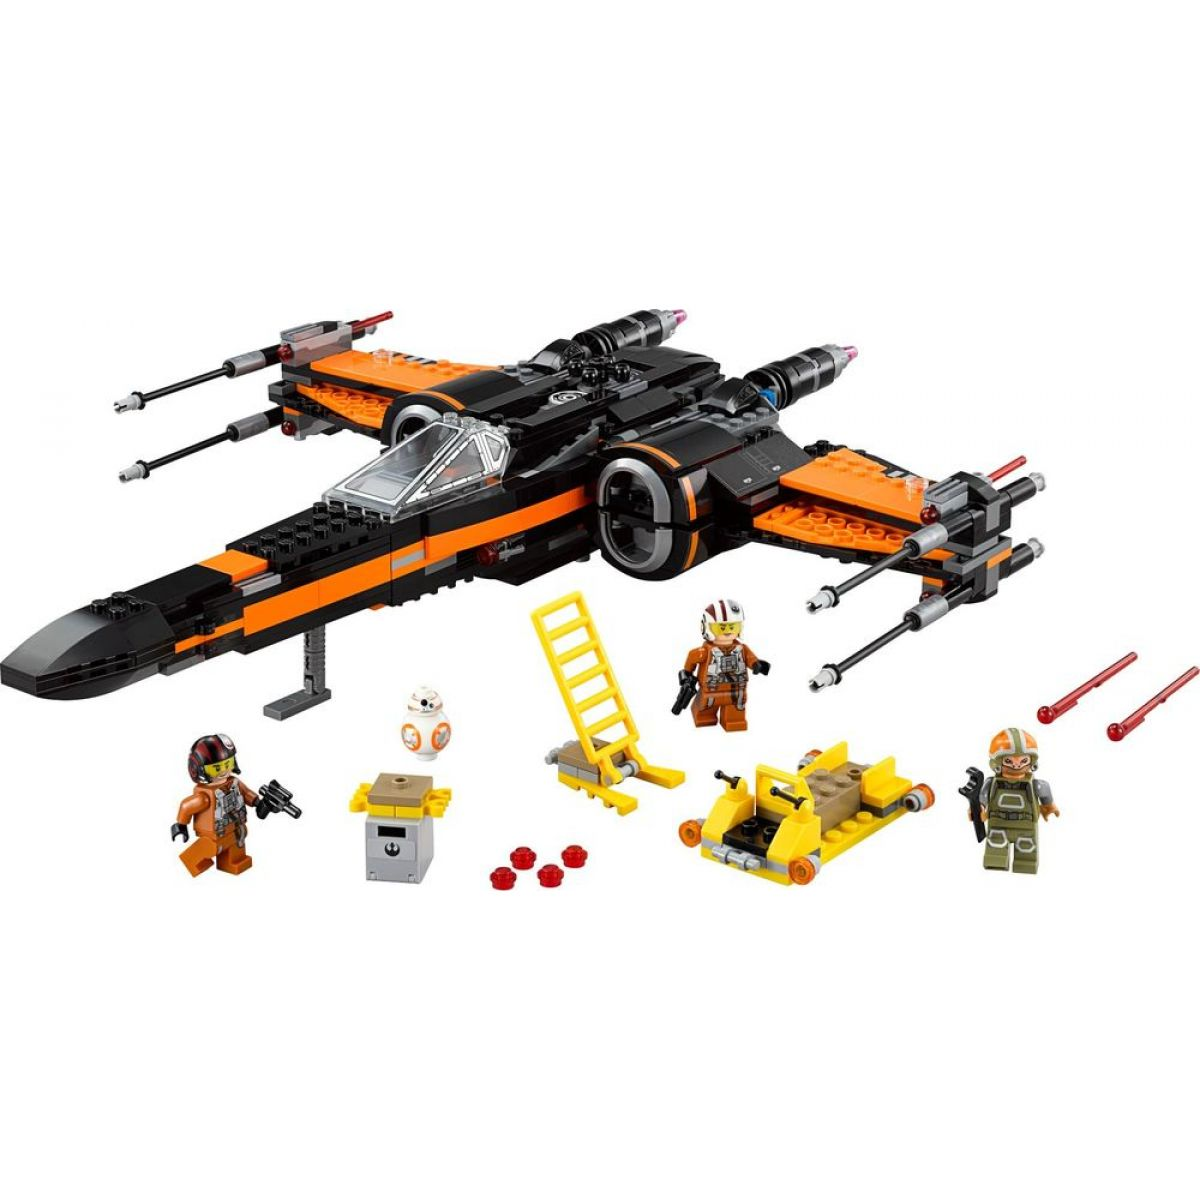 LEGO Star Wars 75102 Poe's X-Wing Fighter #8